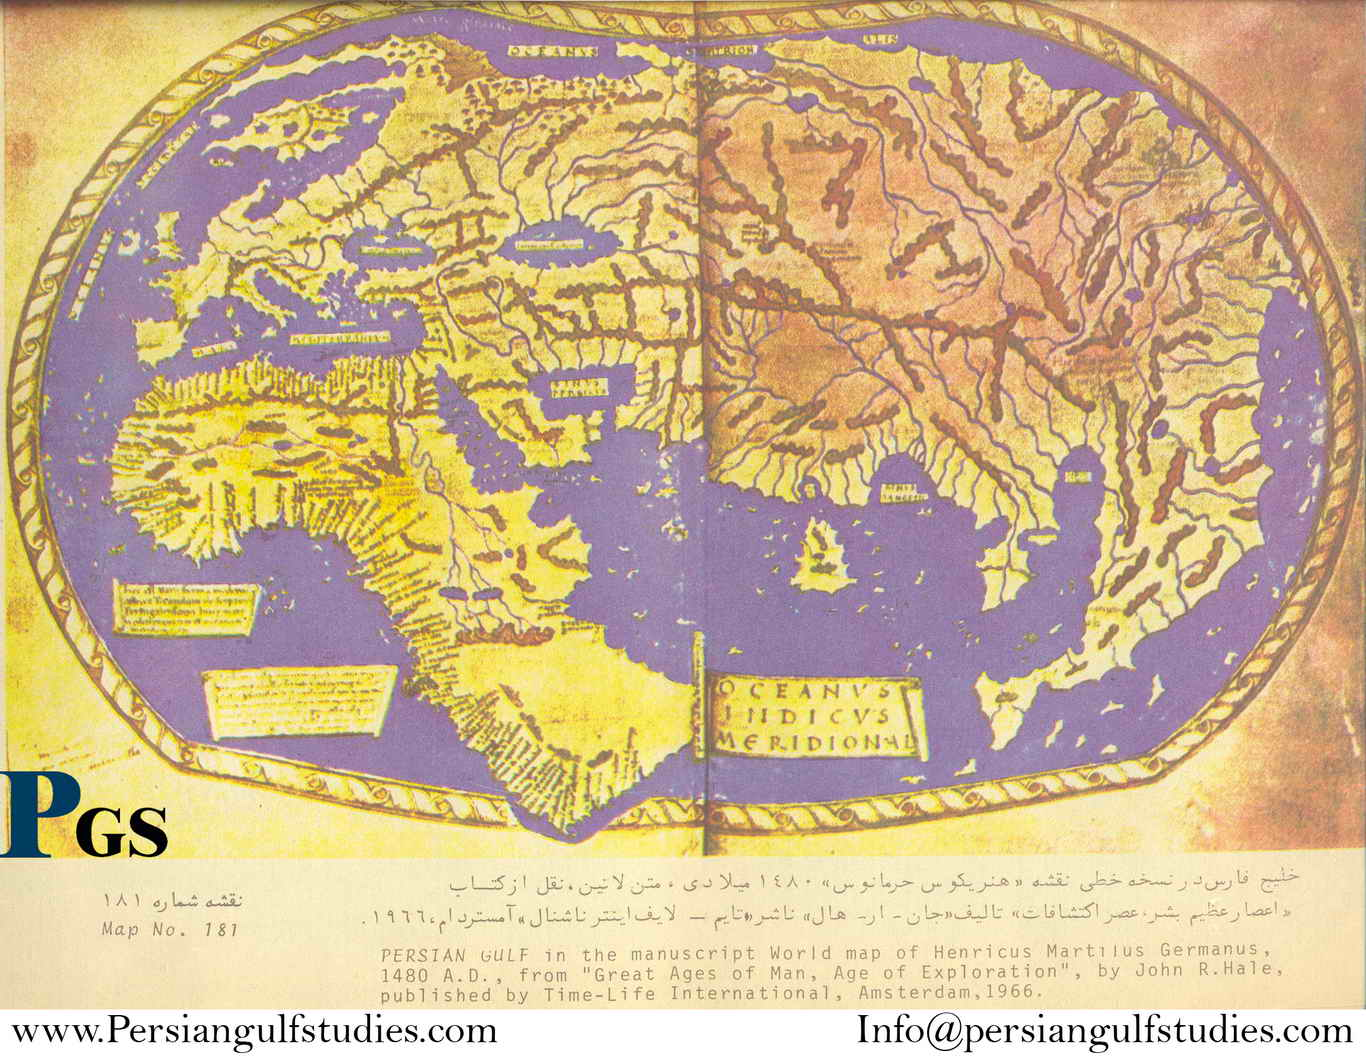 From 1470 ad to 1700 adpersian gulf history map persian gulf in the global map made in 1491 ad by bohemus norib latin text from history of maps making by athway golden press new york gumiabroncs Gallery